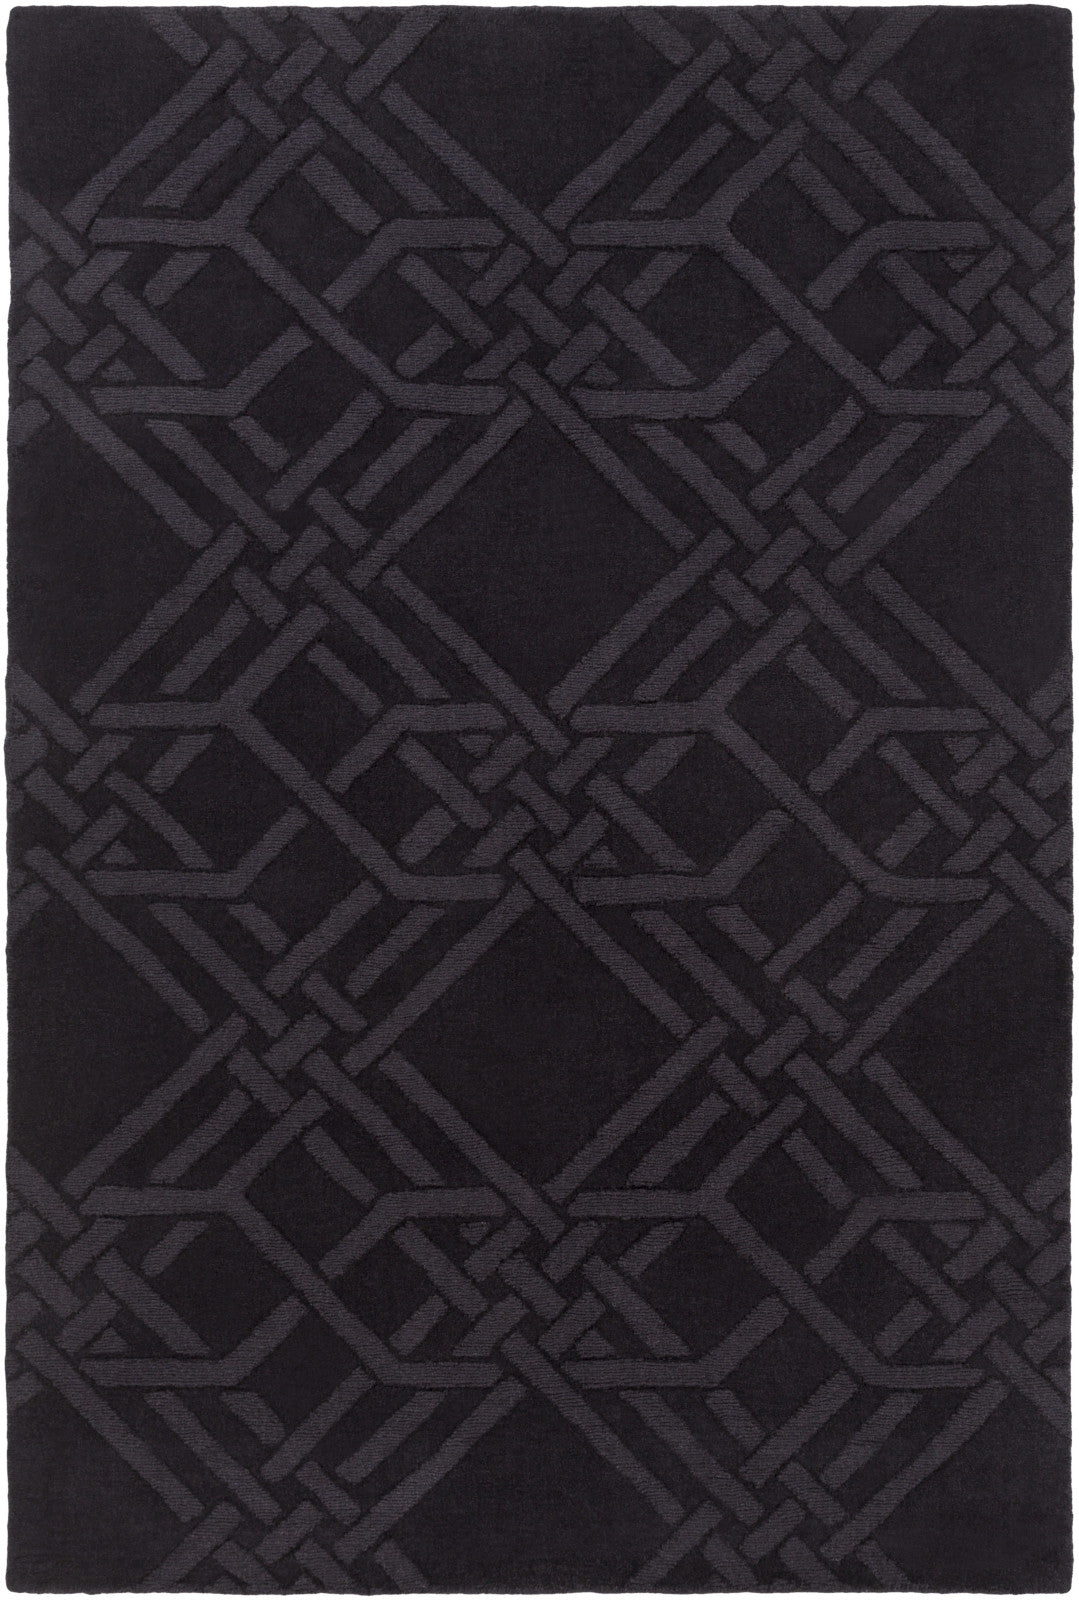 Surya The Oakes OAK-6002 Area Rug by Florence Broadhurst